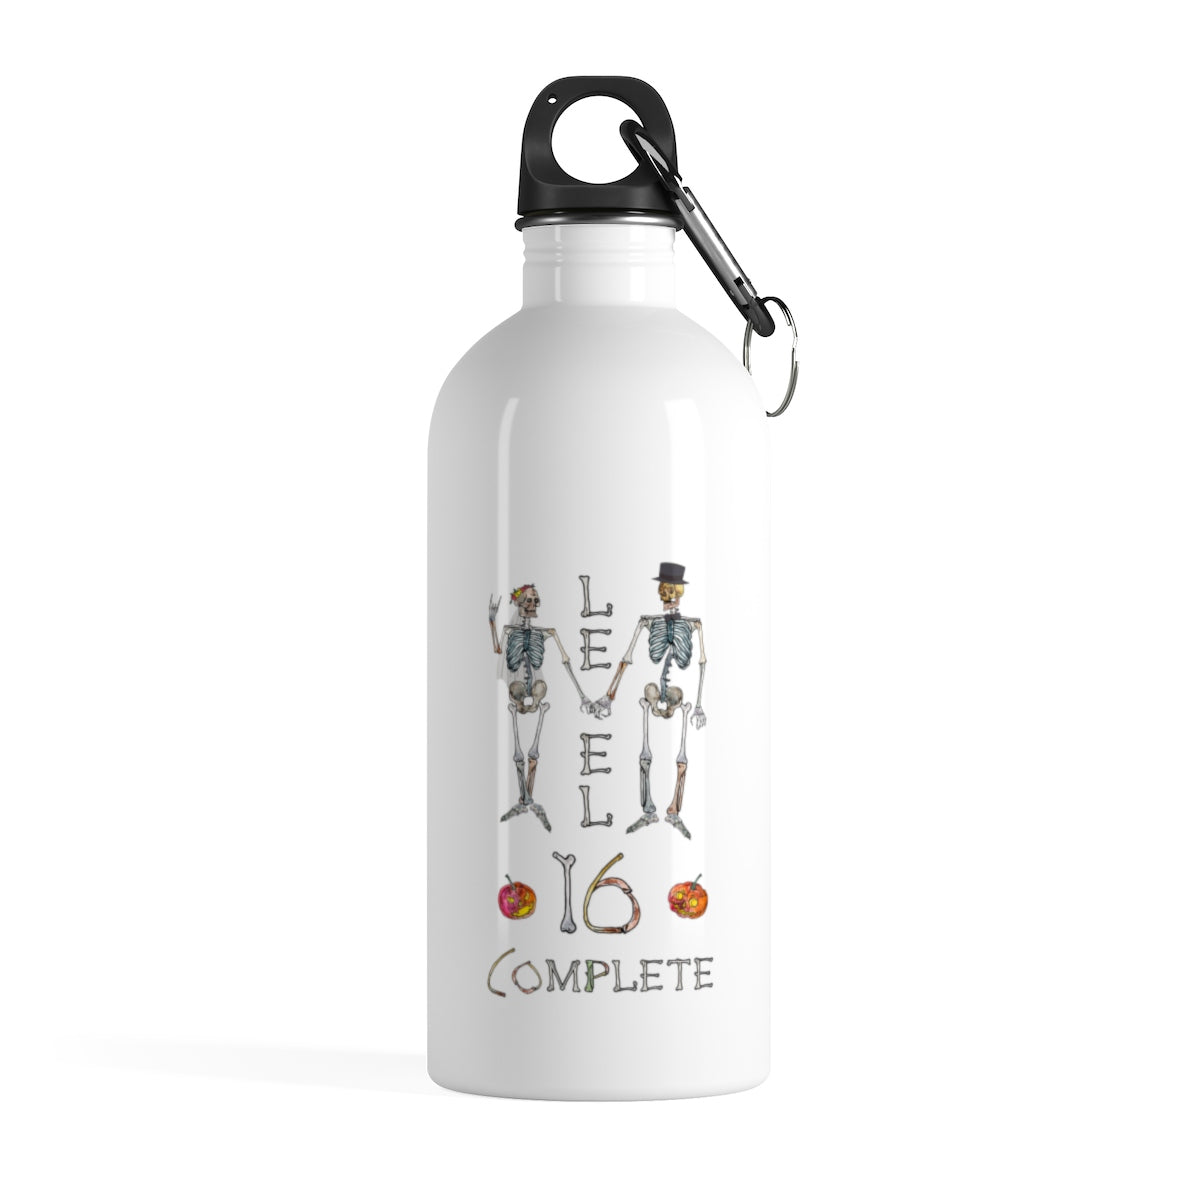 Wedding Anniversary Gift - Stainless Steel Water Bottle - Level 16 Complete